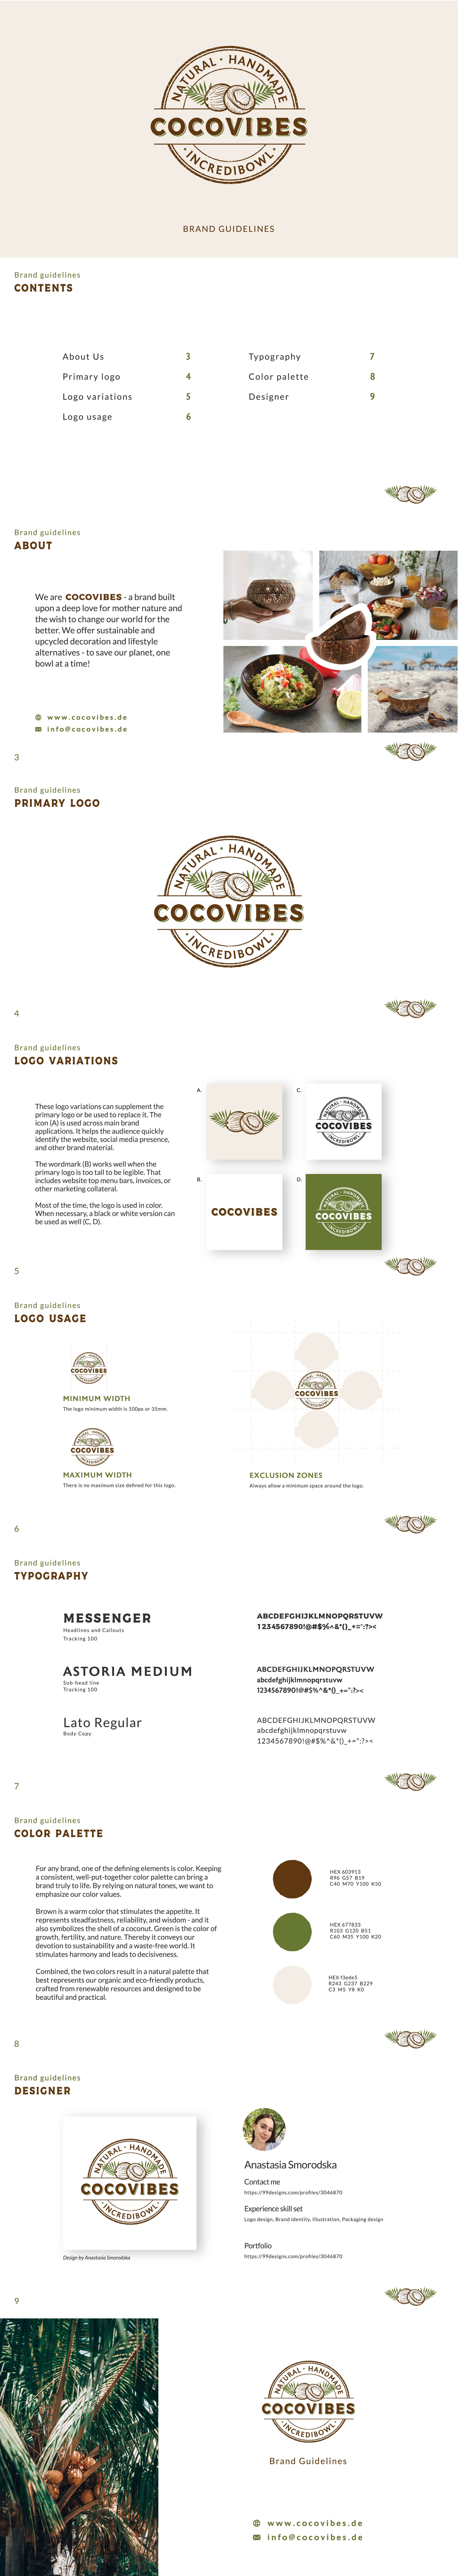 We need a new logo for our coconut based brand in Lifestyle, Decor & Kitchen Design